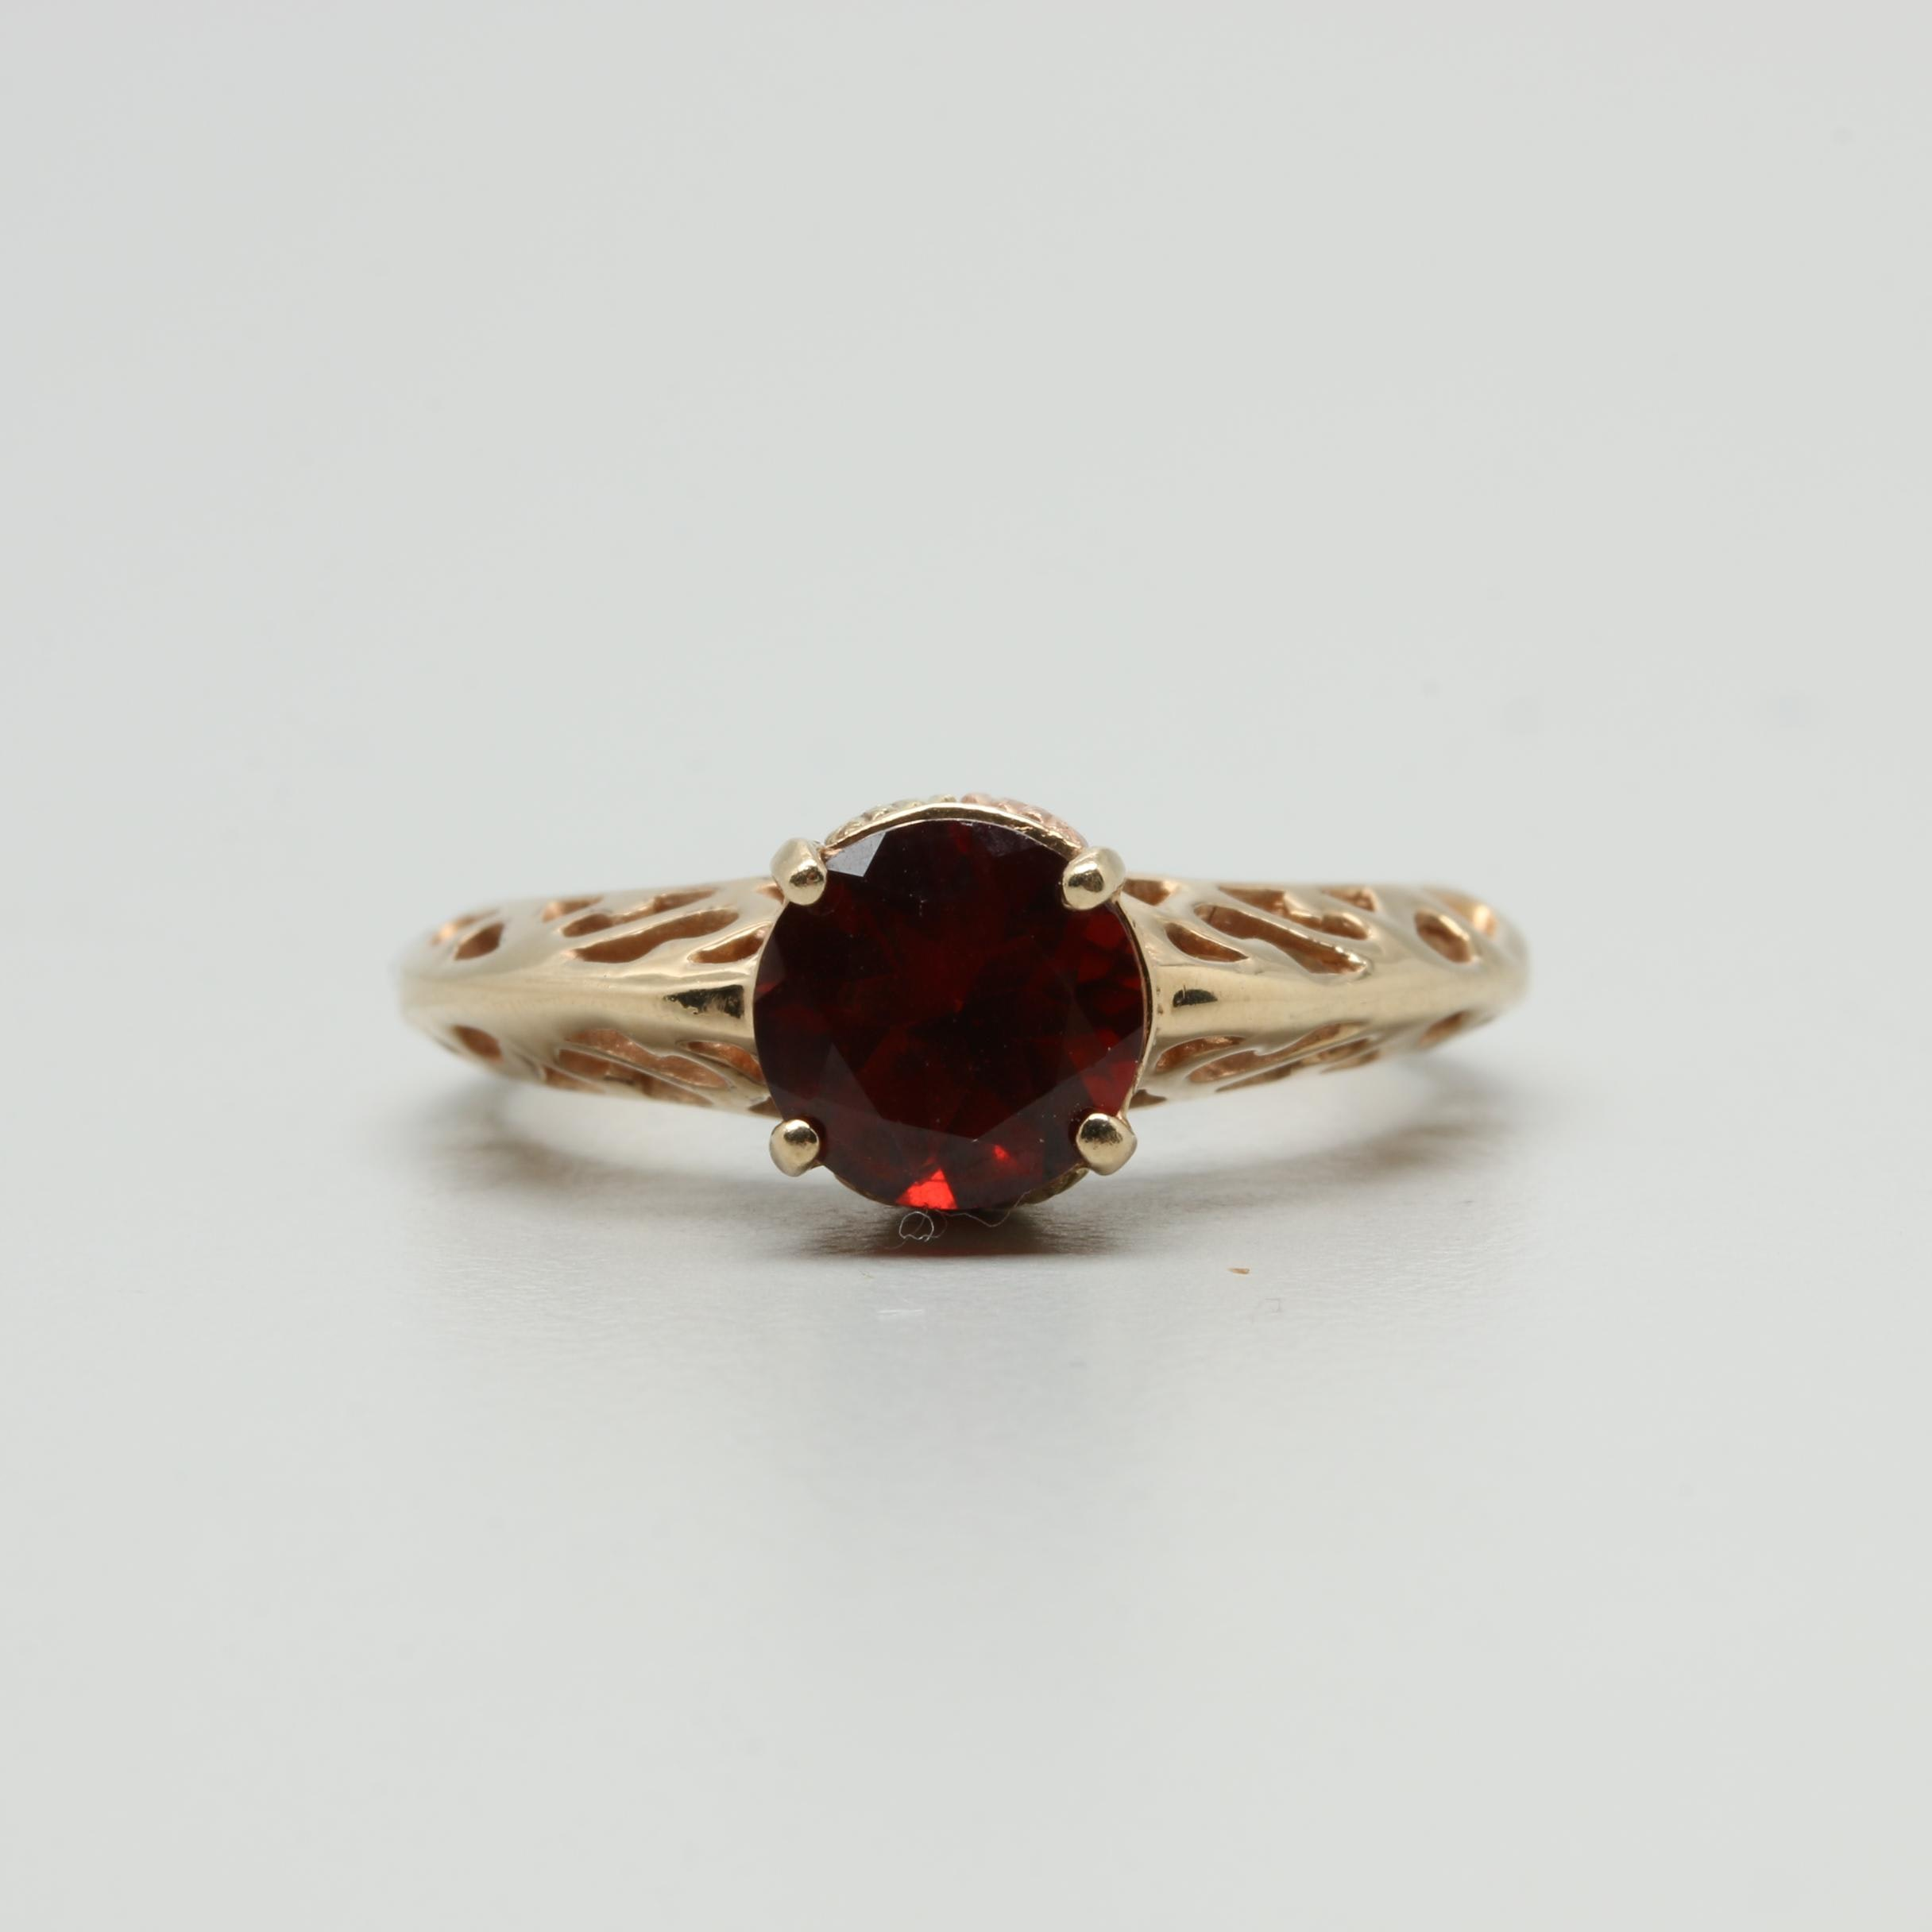 Coleman Co. 10K Yellow Gold Garnet Ring with Rose and Green Gold Accents